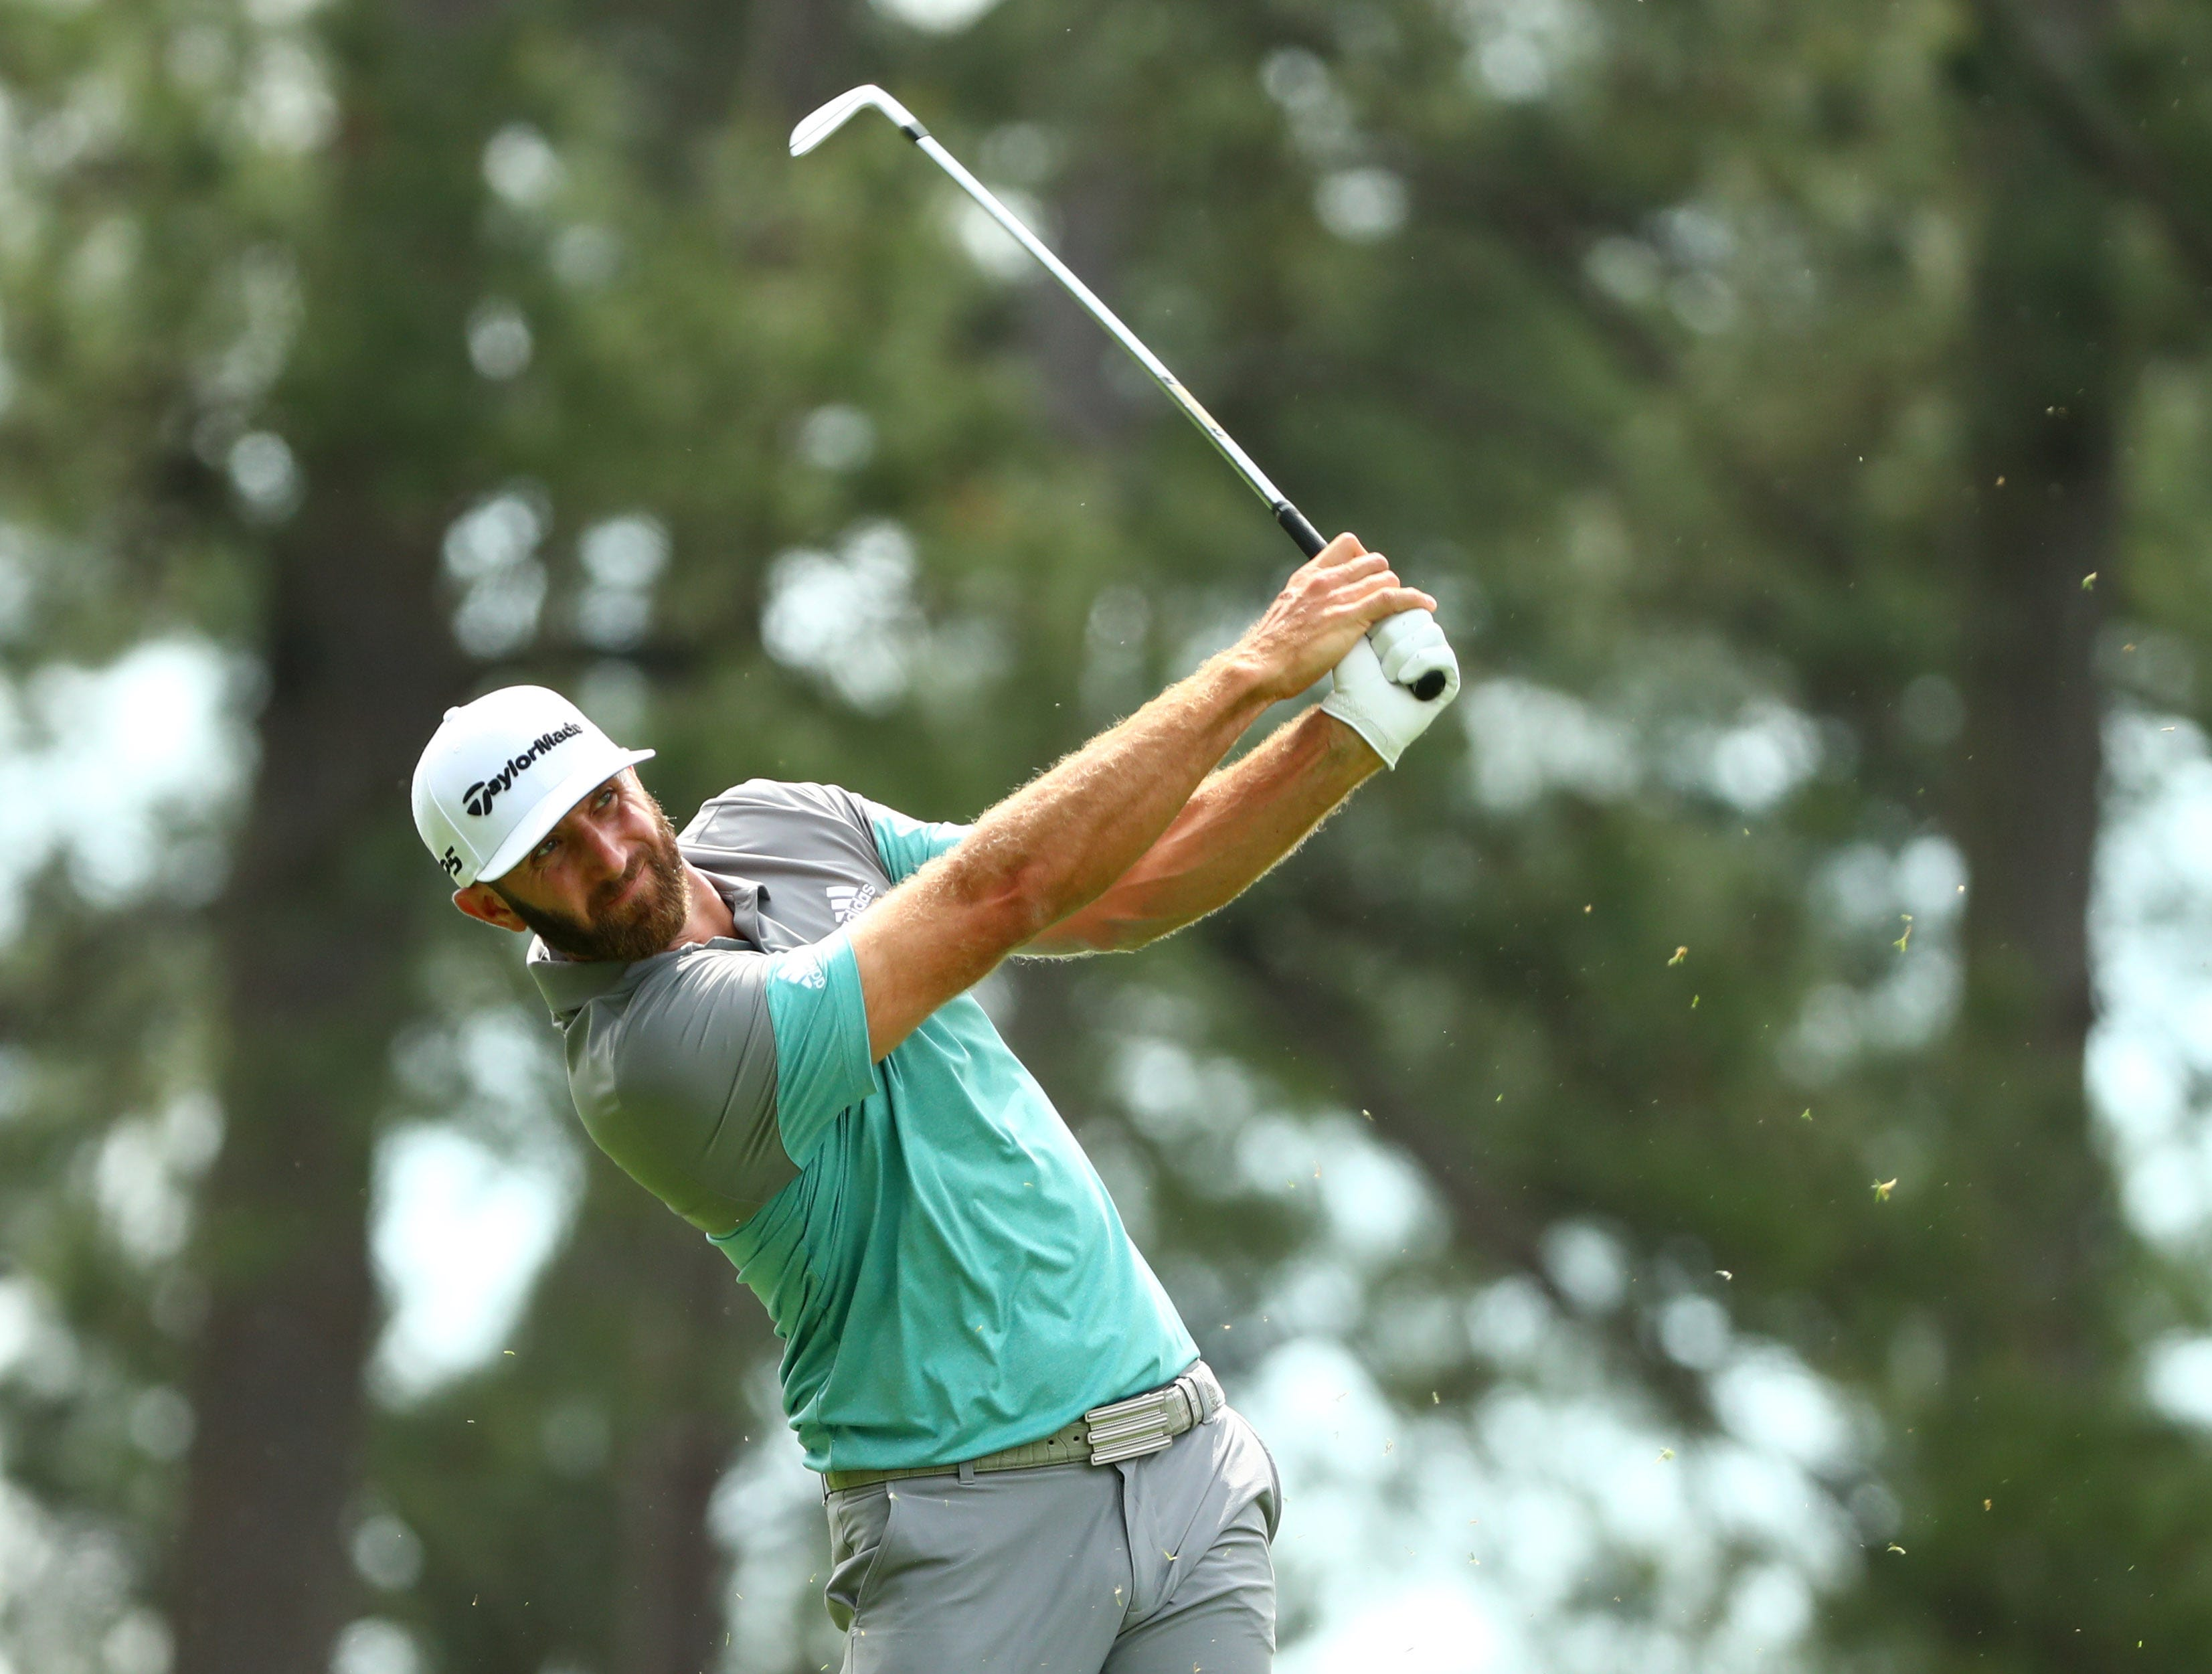 Apr 12, 2019; Augusta, GA, USA; Dustin Johnson hits his tee shot on the 4th hole during the second round of The Masters golf tournament at Augusta National Golf Club. Mandatory Credit: Rob Schumacher-USA TODAY Sports